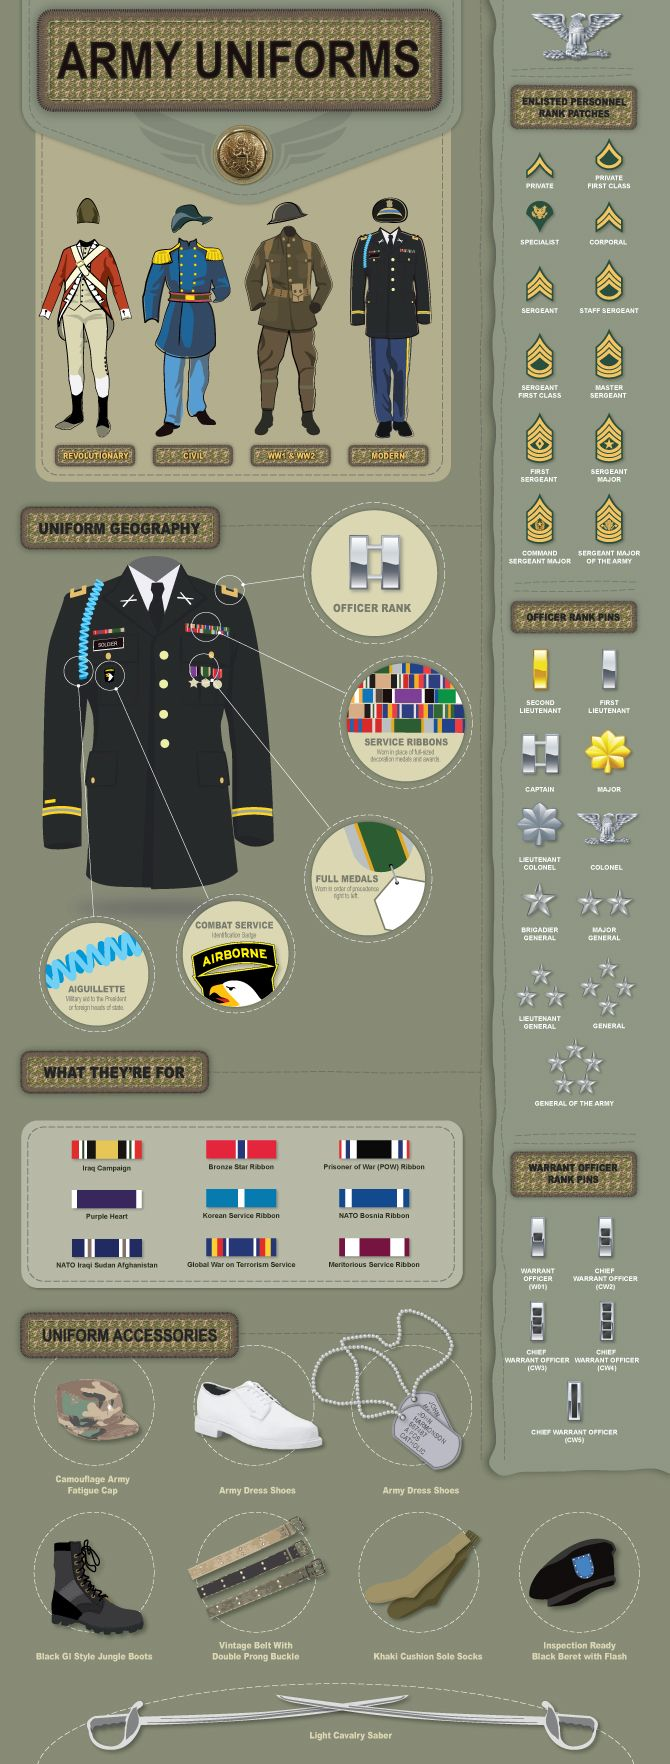 interesting picture I've just found - a military uniform explained ...